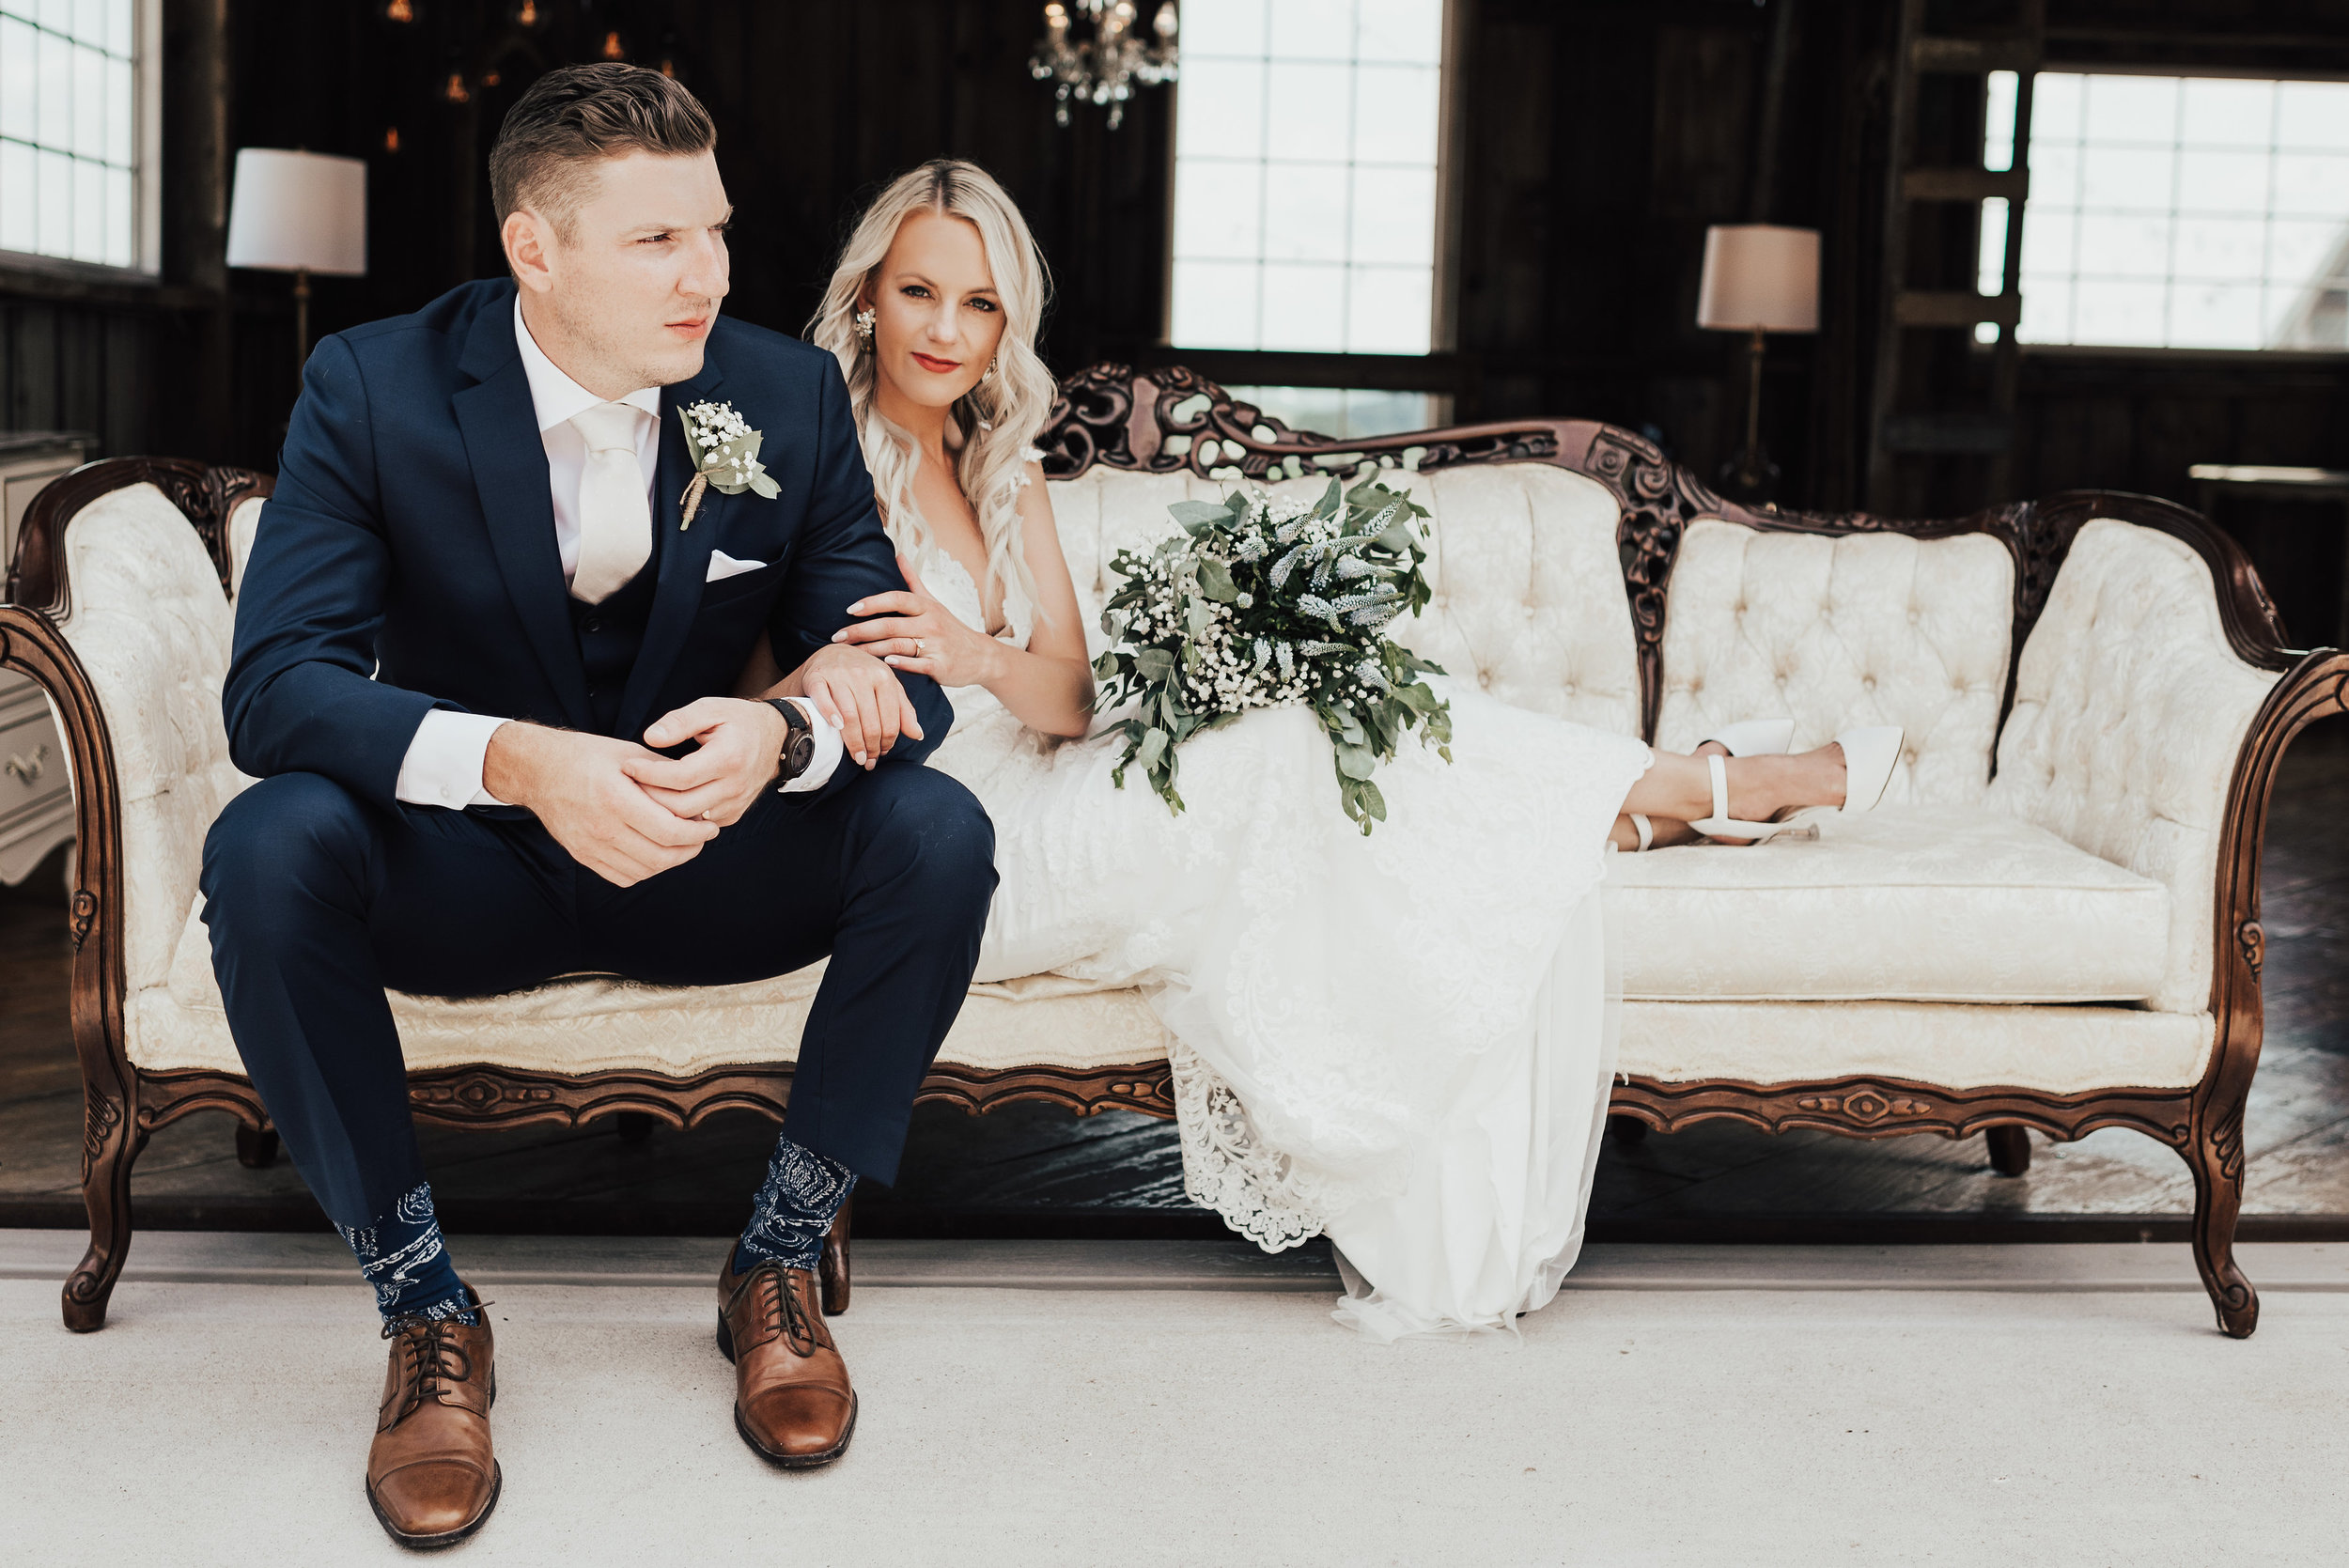 The stellar Host - Way to take care of your guests! From two thoughtful lounges to romantic table decor this package creates a memorable event that your guests will never want to leave.Photo: Steena Anne